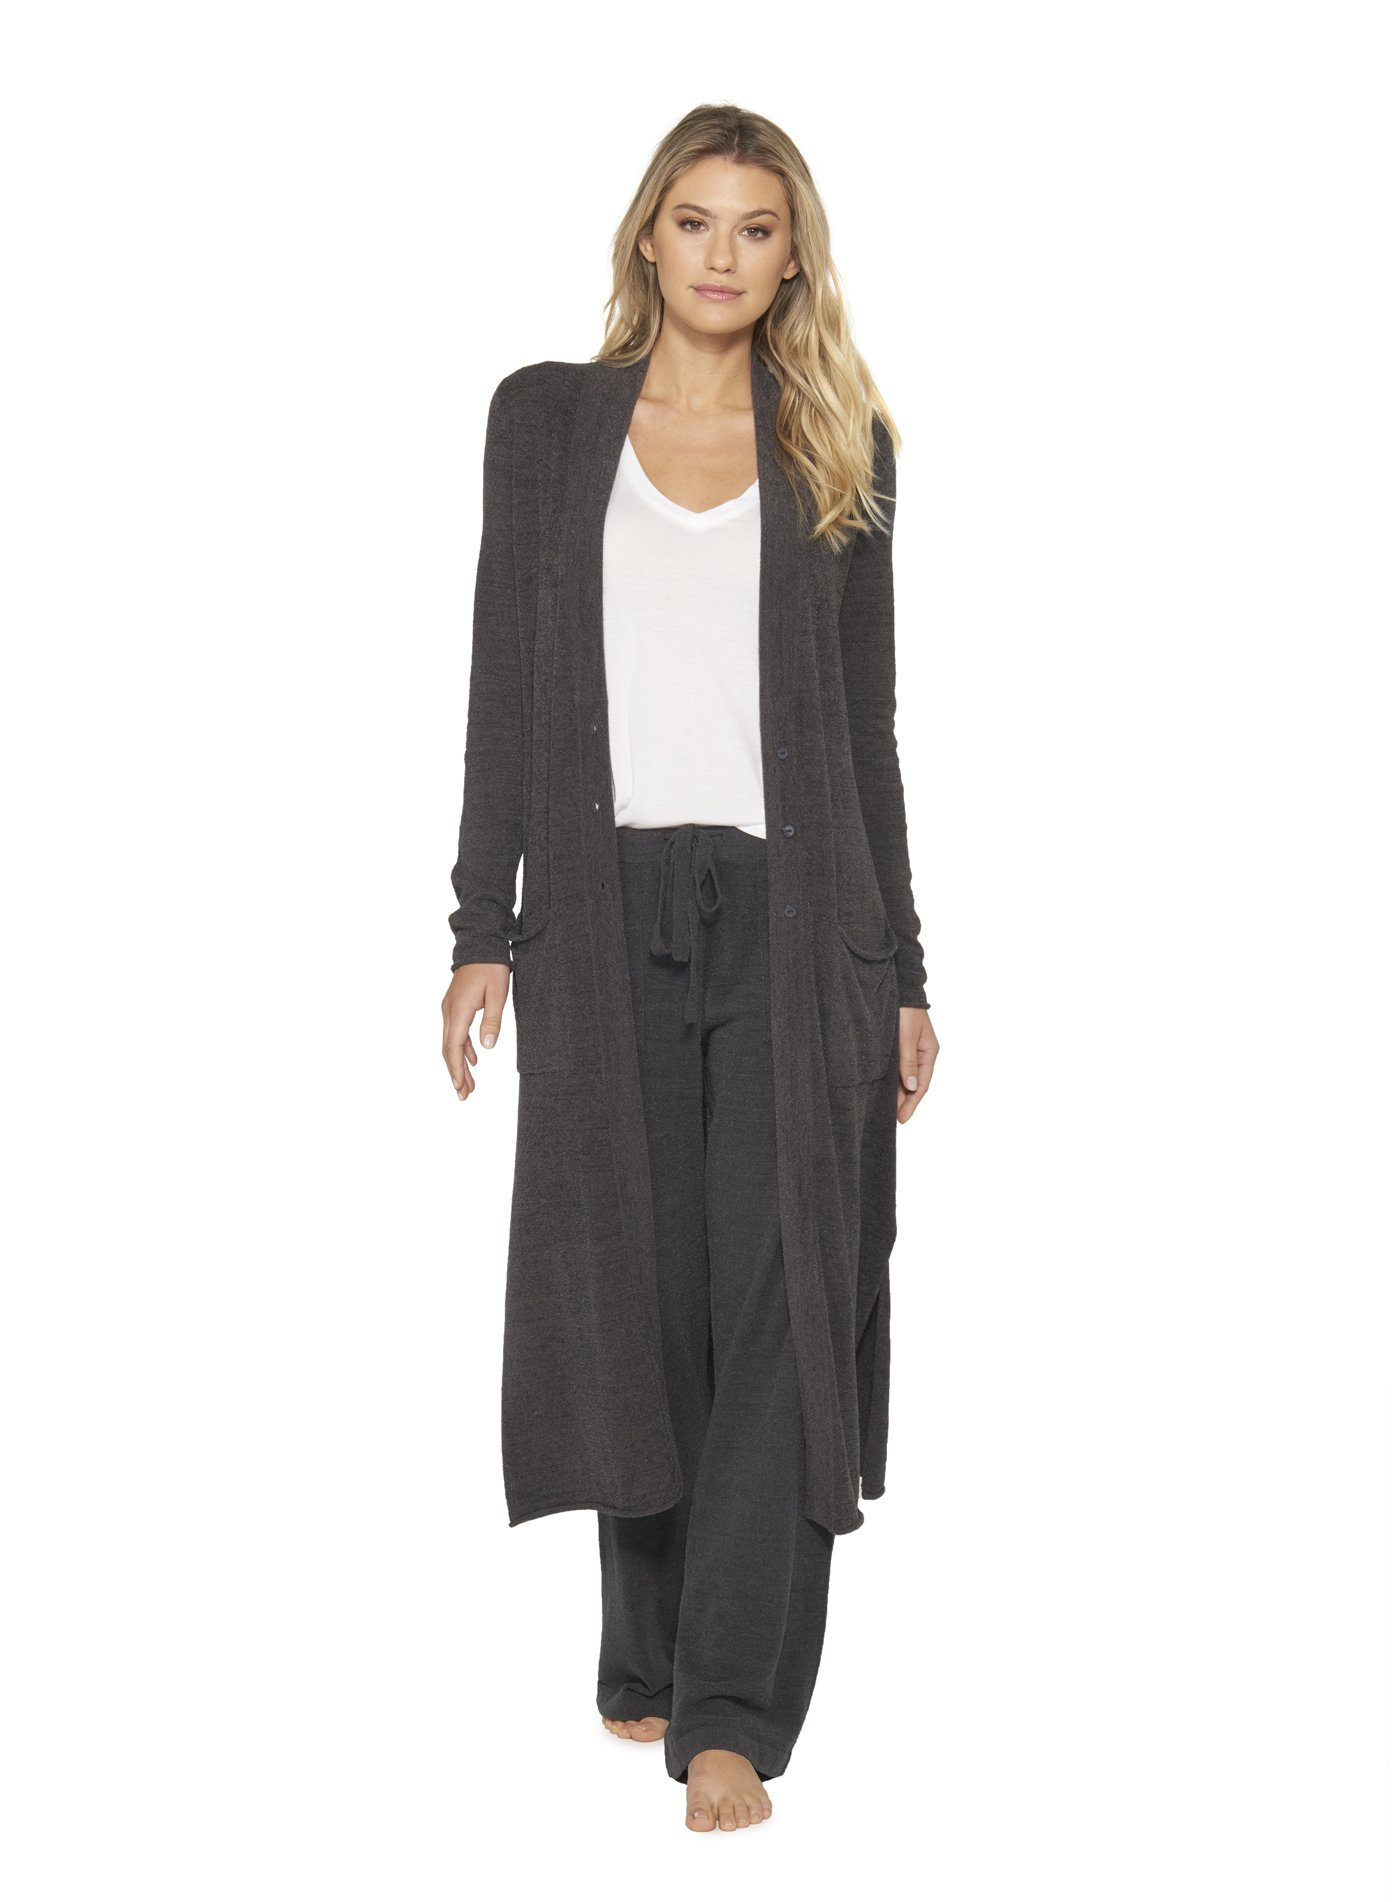 Barefoot Dreams Cozychic Lite Duster, Carbon, X-Small